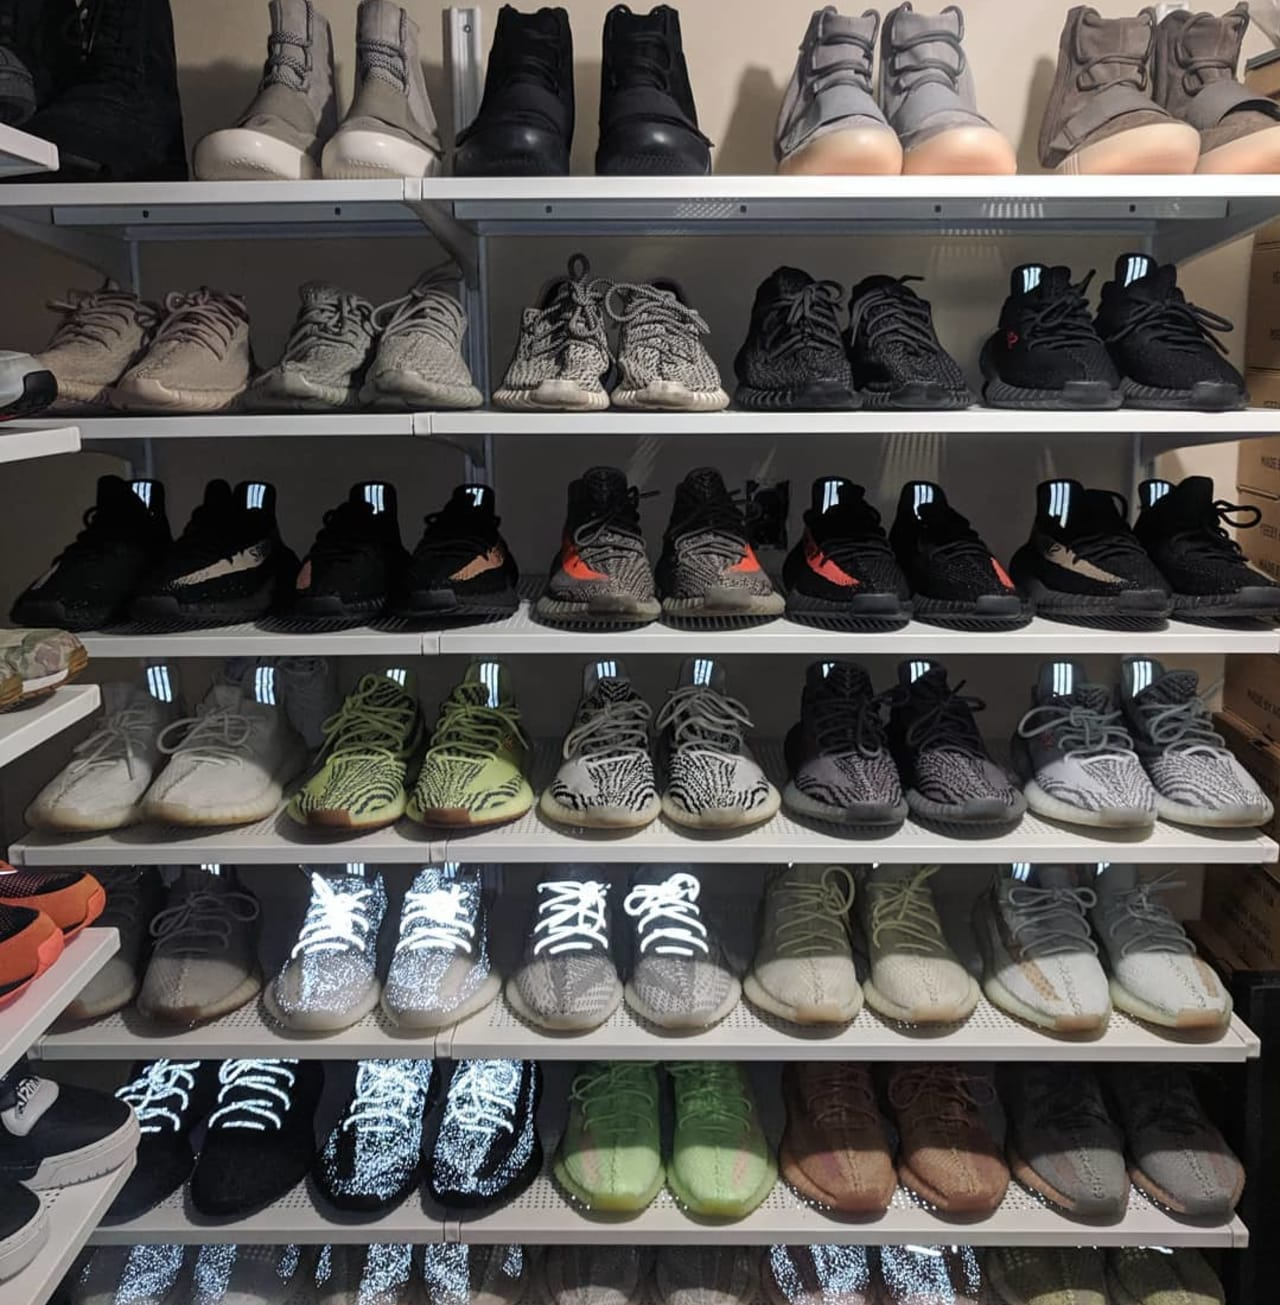 Adidas Isn't Selling As Many Yeezys As